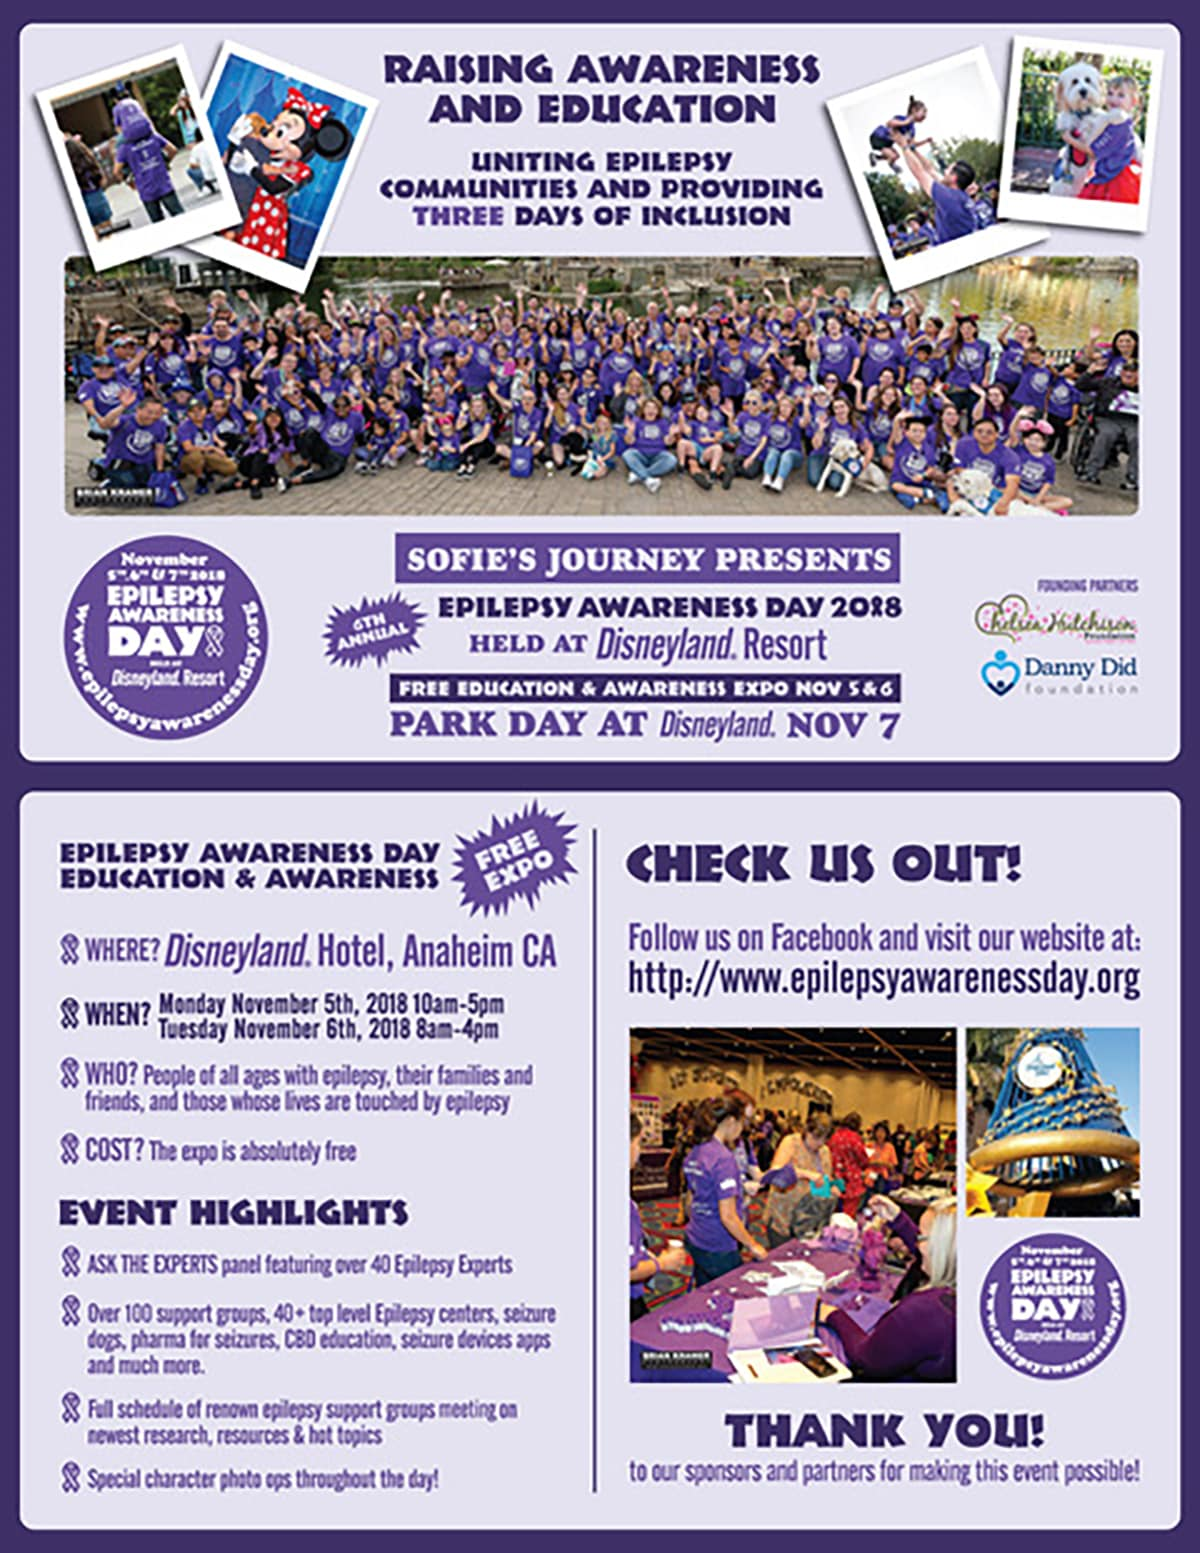 Epilepsy Awareness Day 2018 Flyer